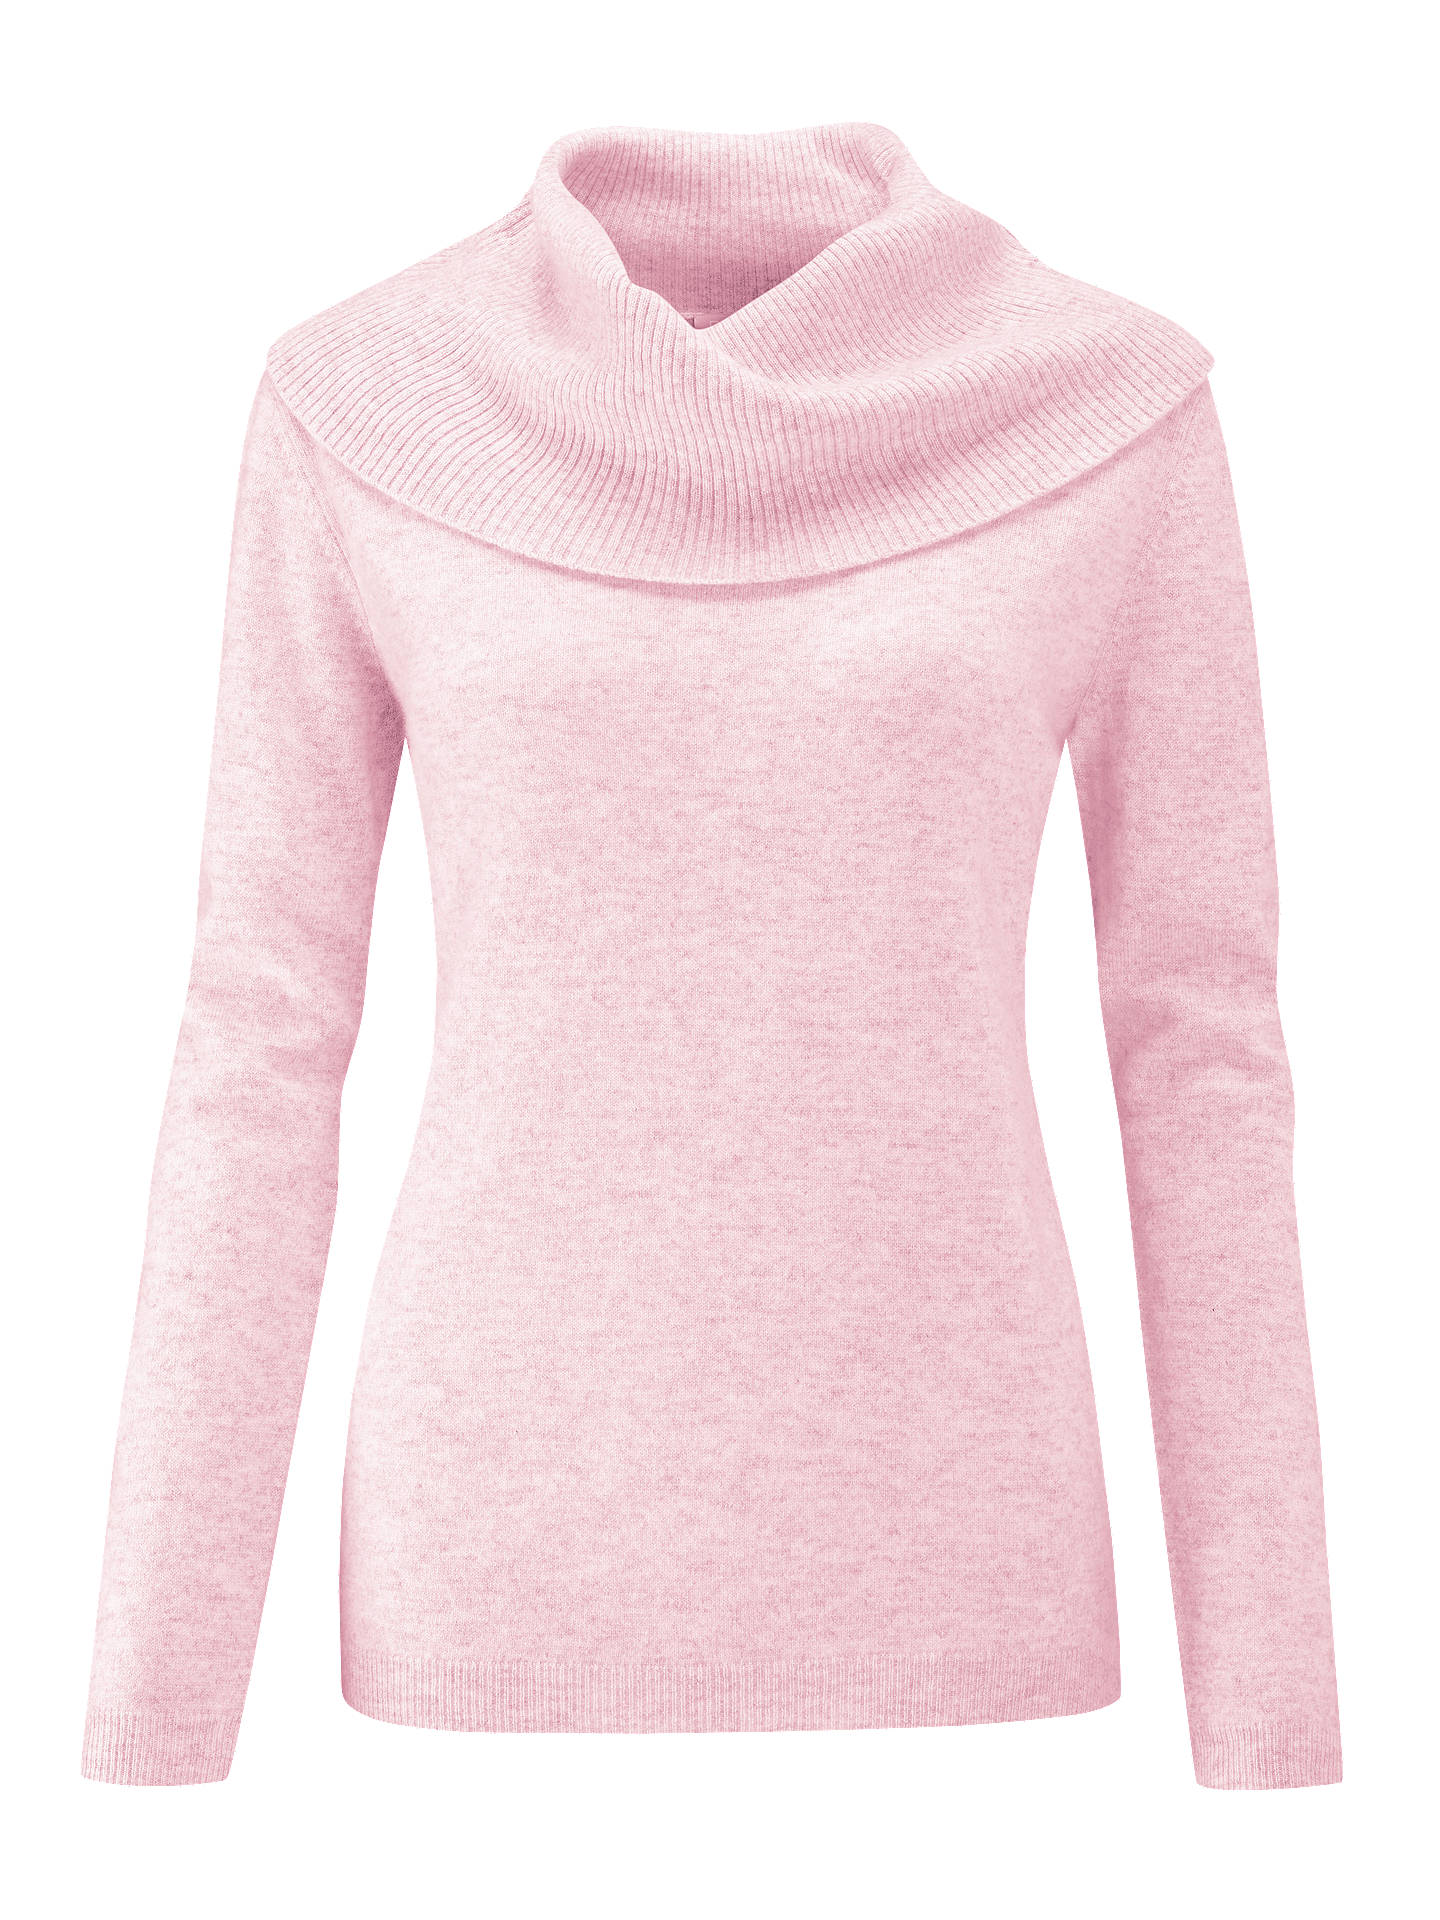 BuyPure Collection Cashmere Cowl Neck Sweater, Rose Mist, 8 Online at johnlewis.com